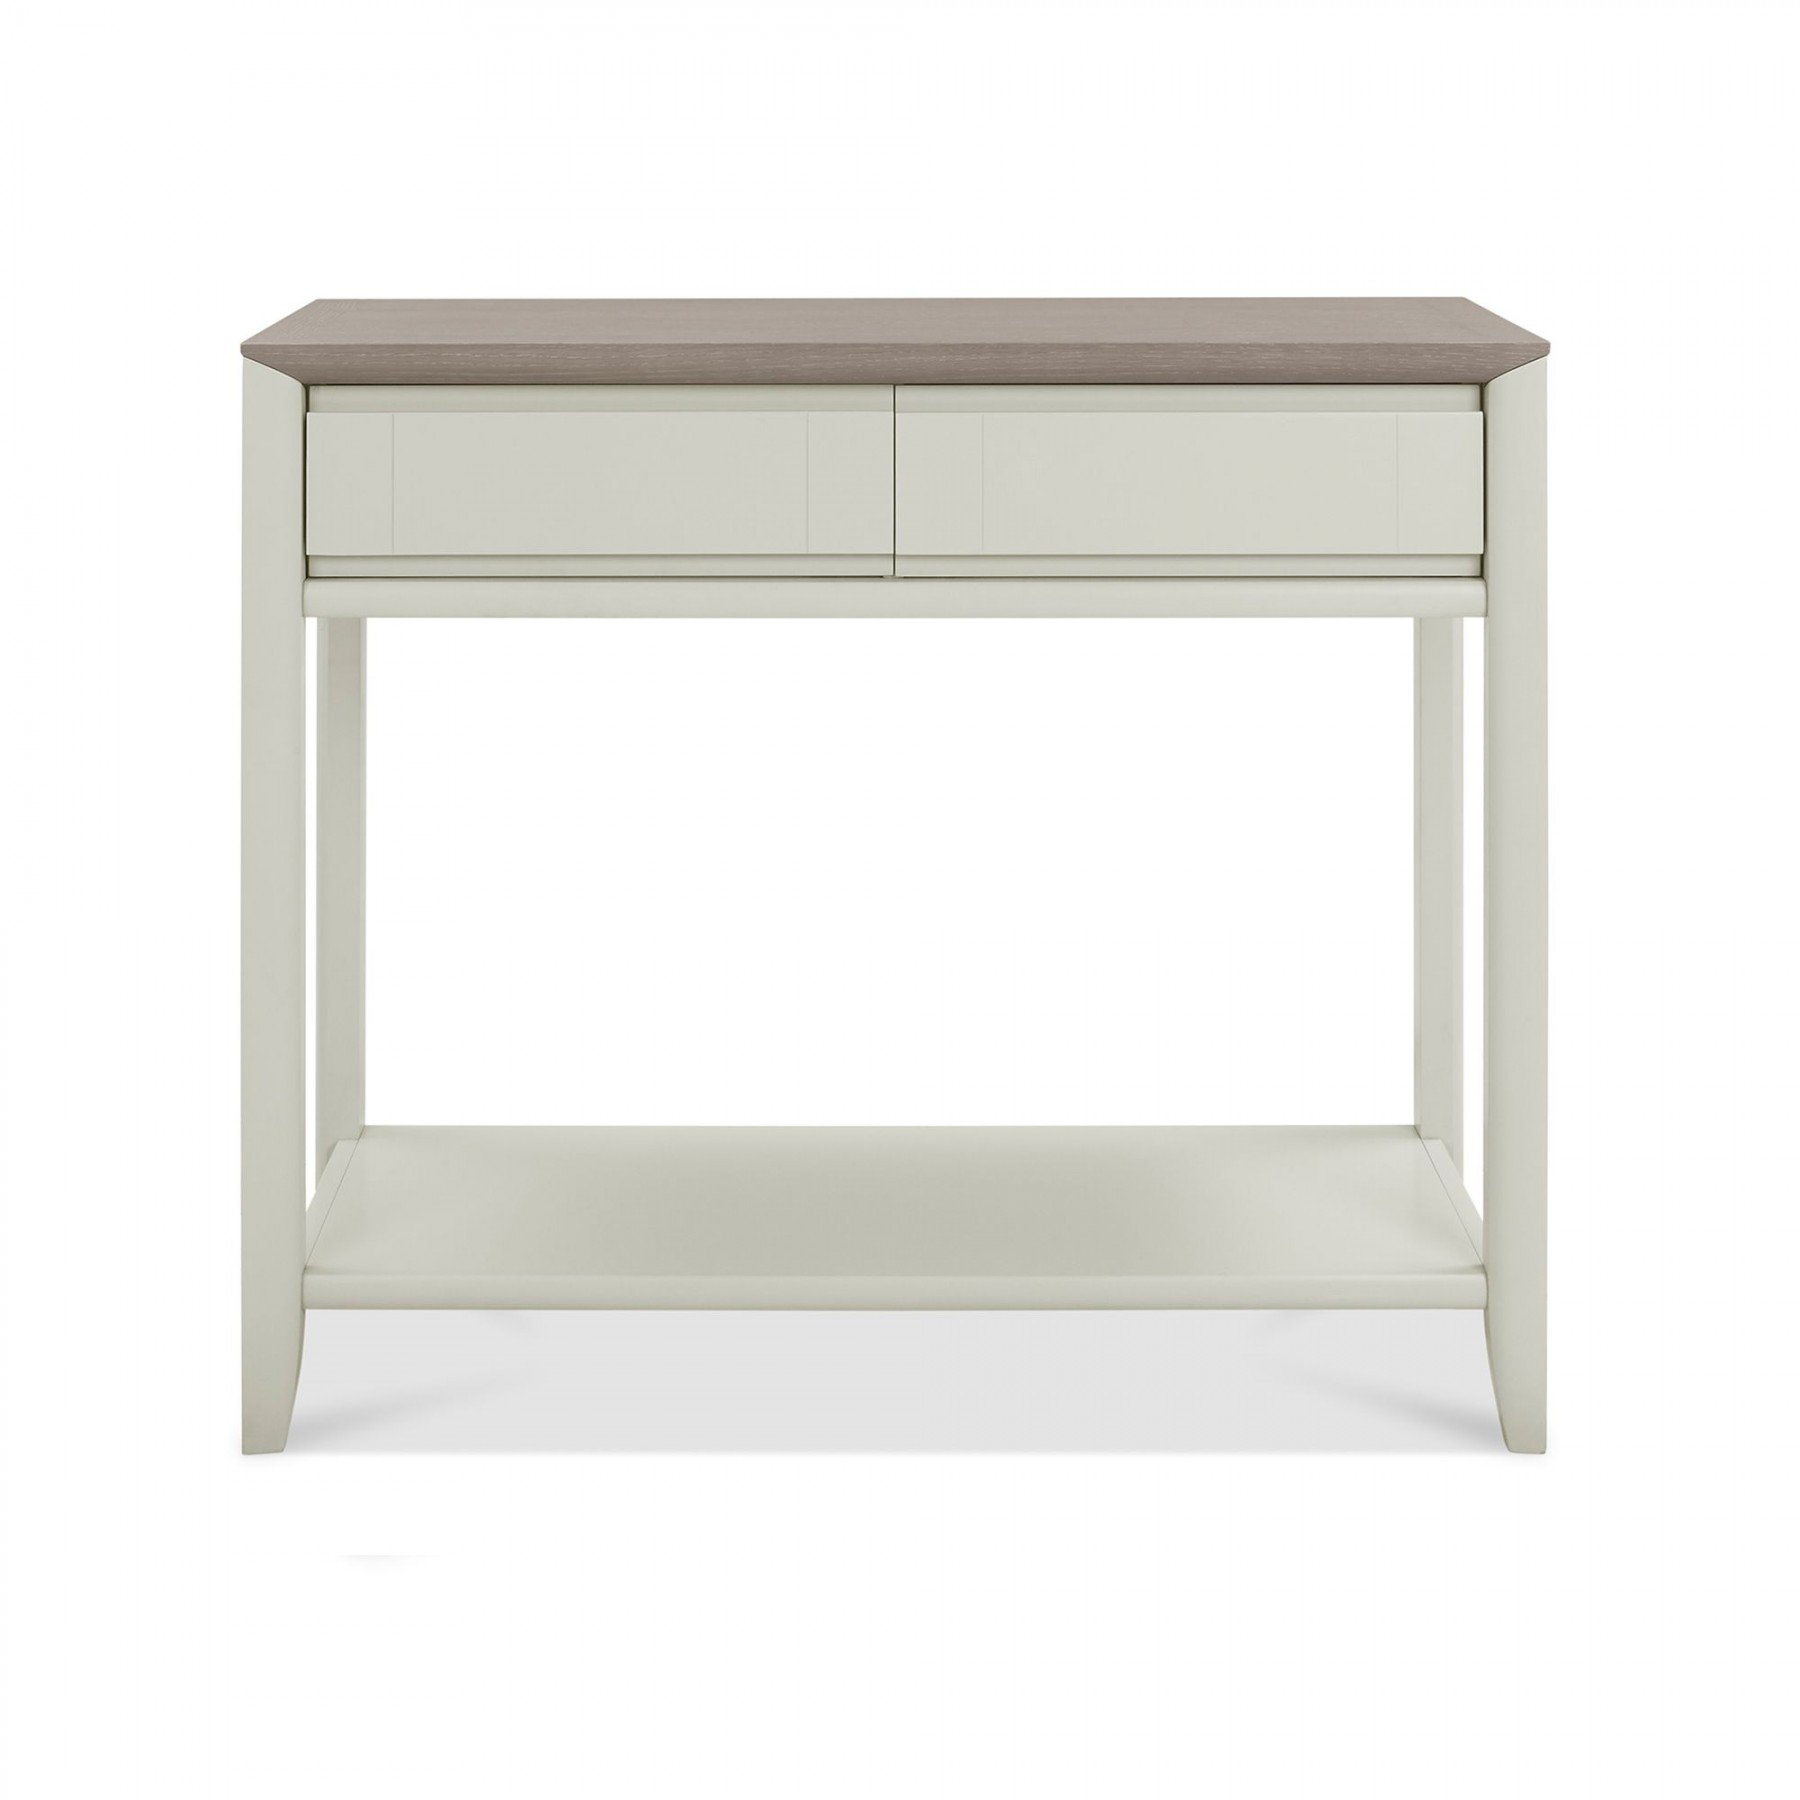 Oakley Grey Console Table with Drawer